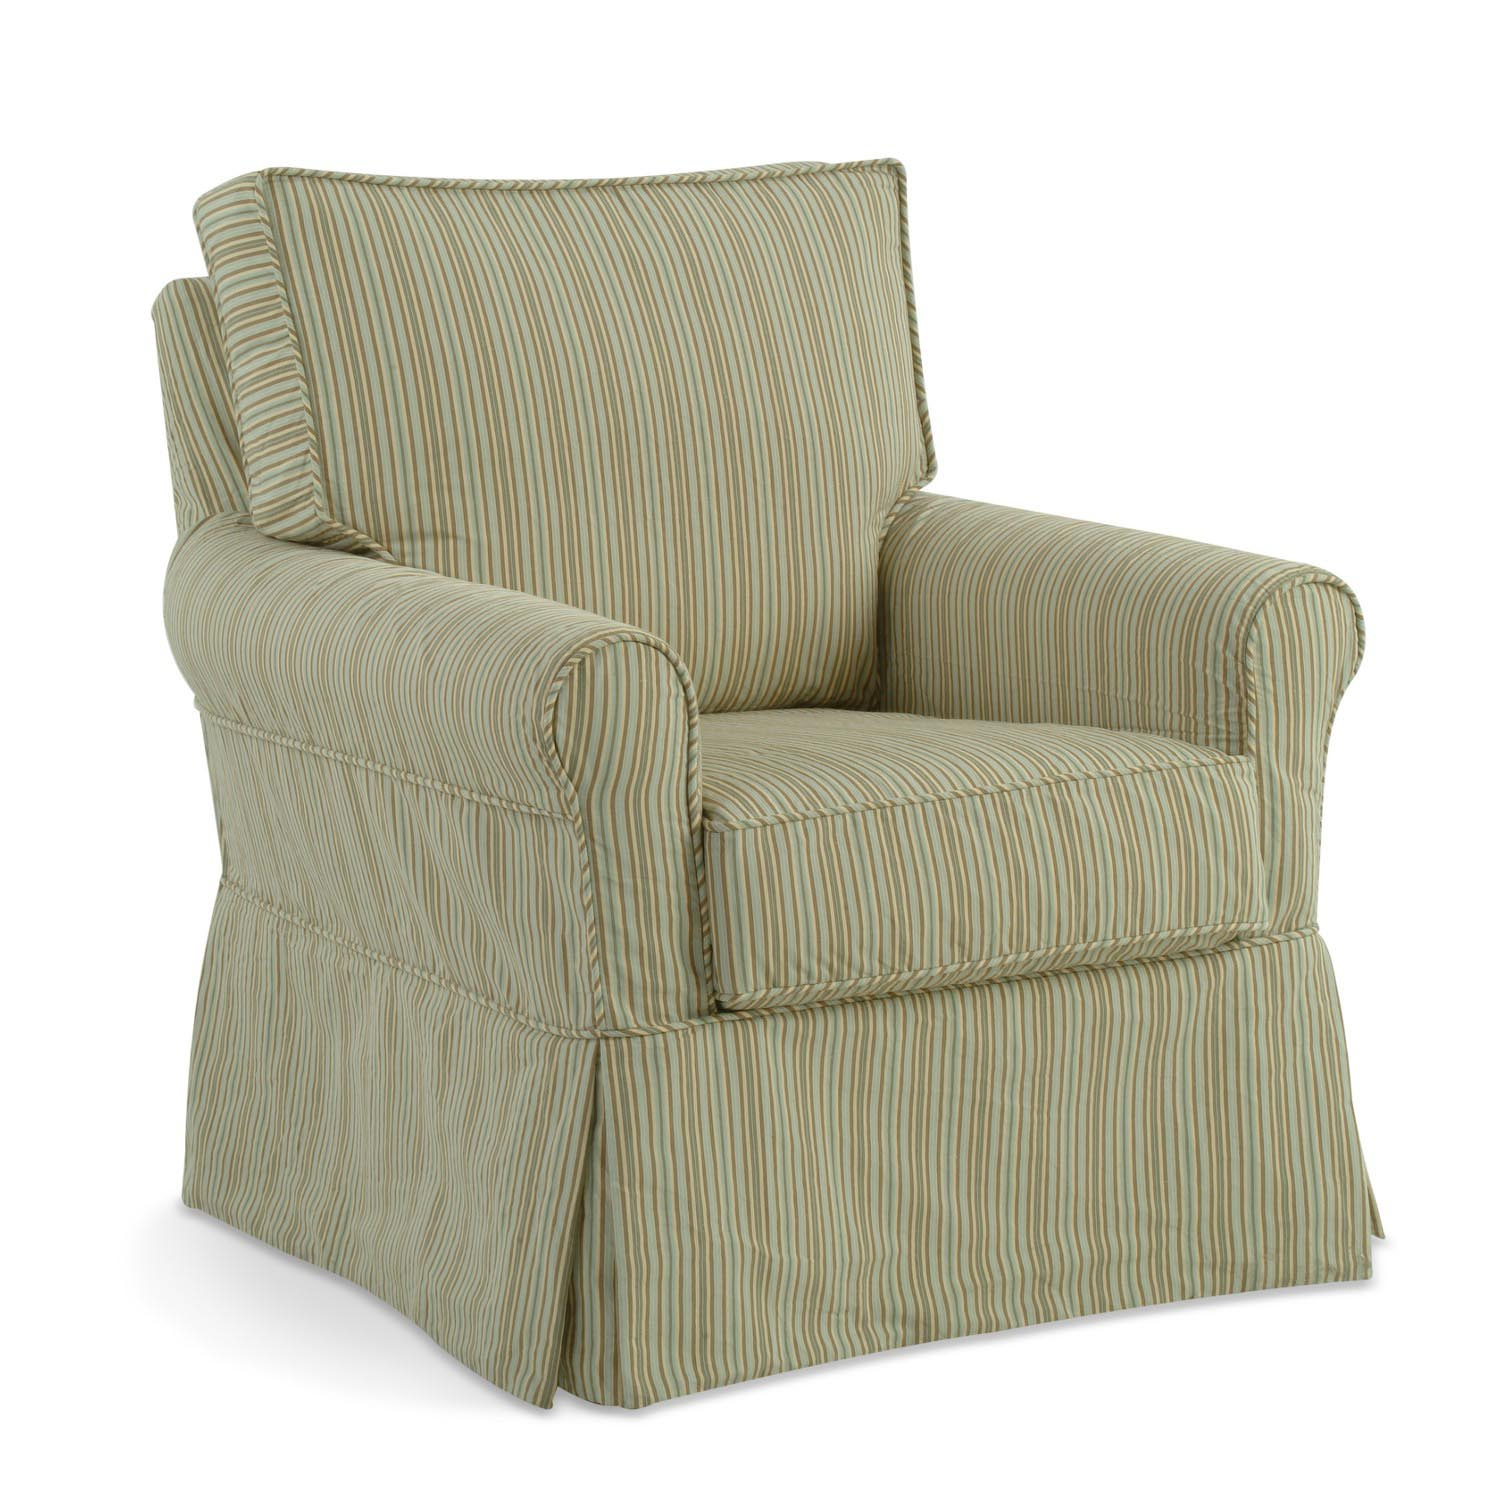 Libby Accent Chair | American Country With Loft Smokey Swivel Accent Chairs (Image 11 of 20)